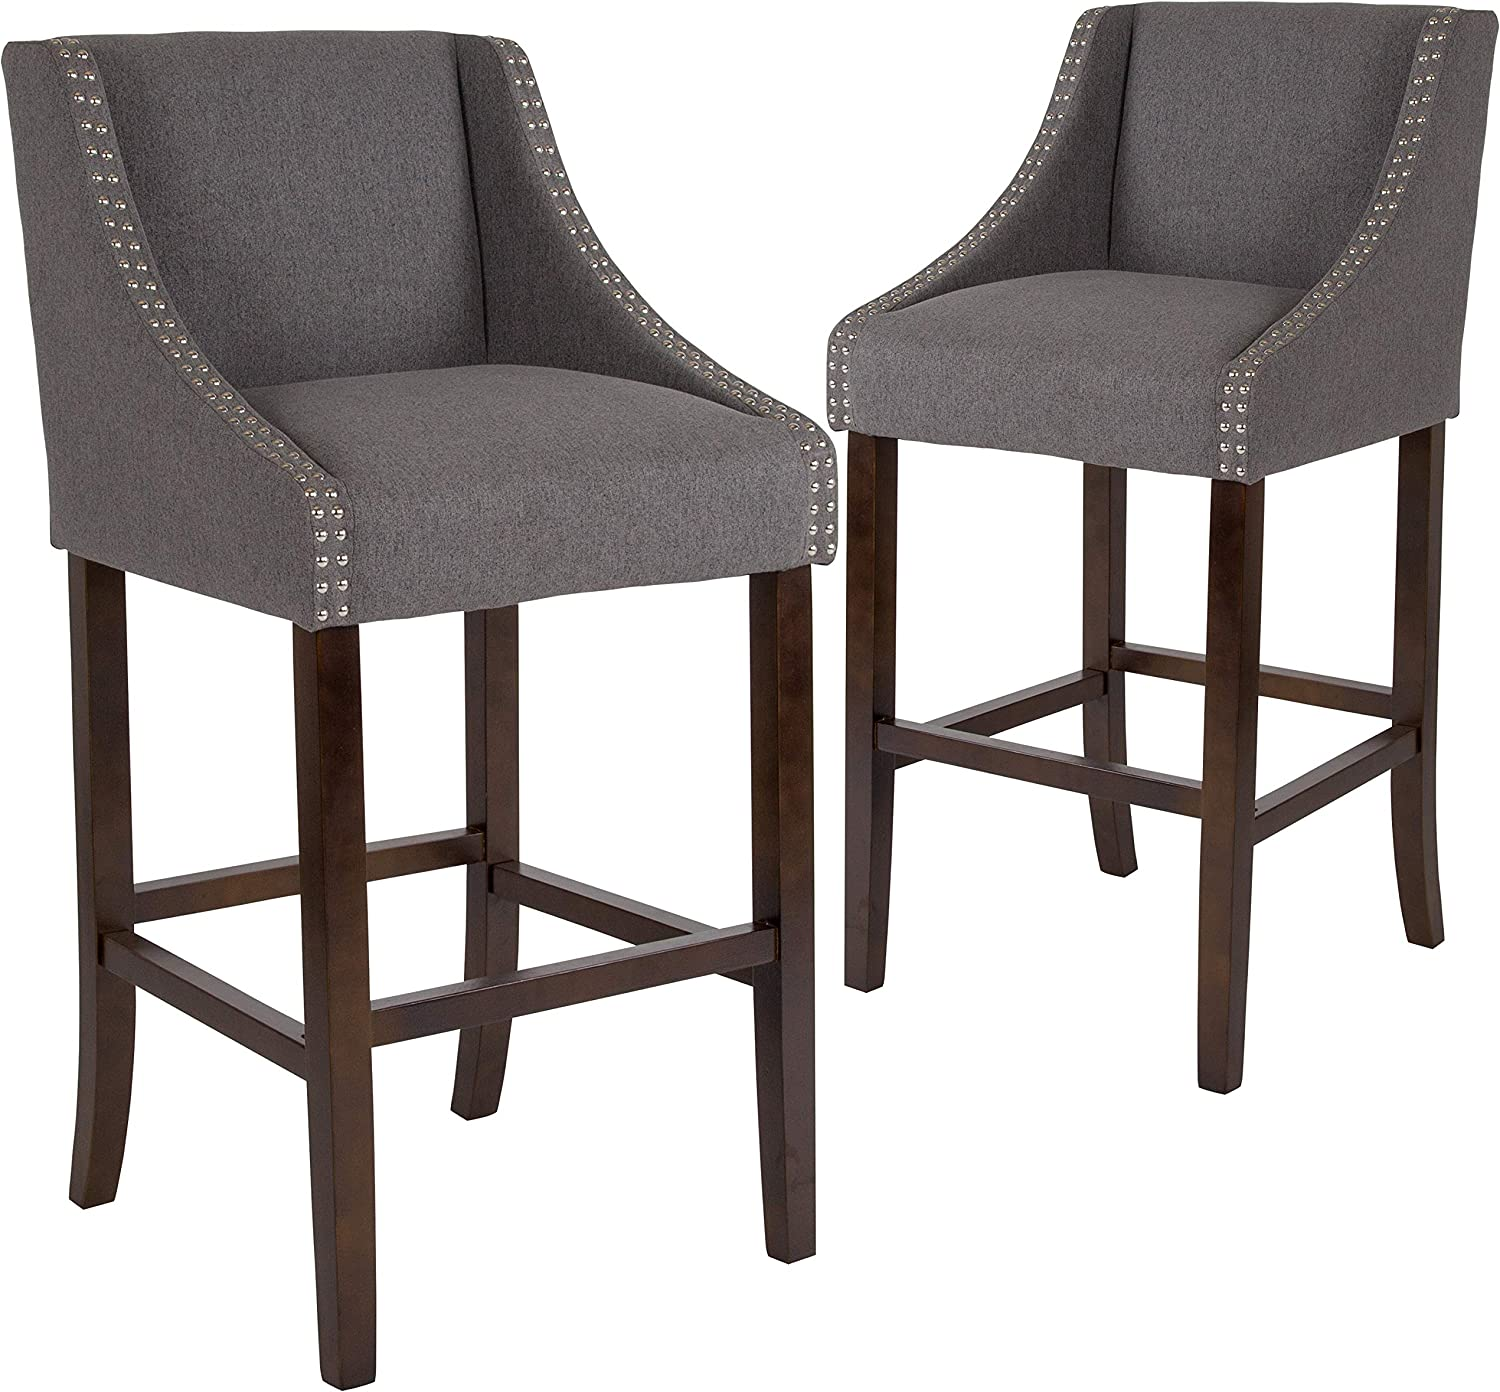 Christopher Knight Home 304583 Truda Mid Century Modern Fabric Barstools Set of 2 in Light Beige,